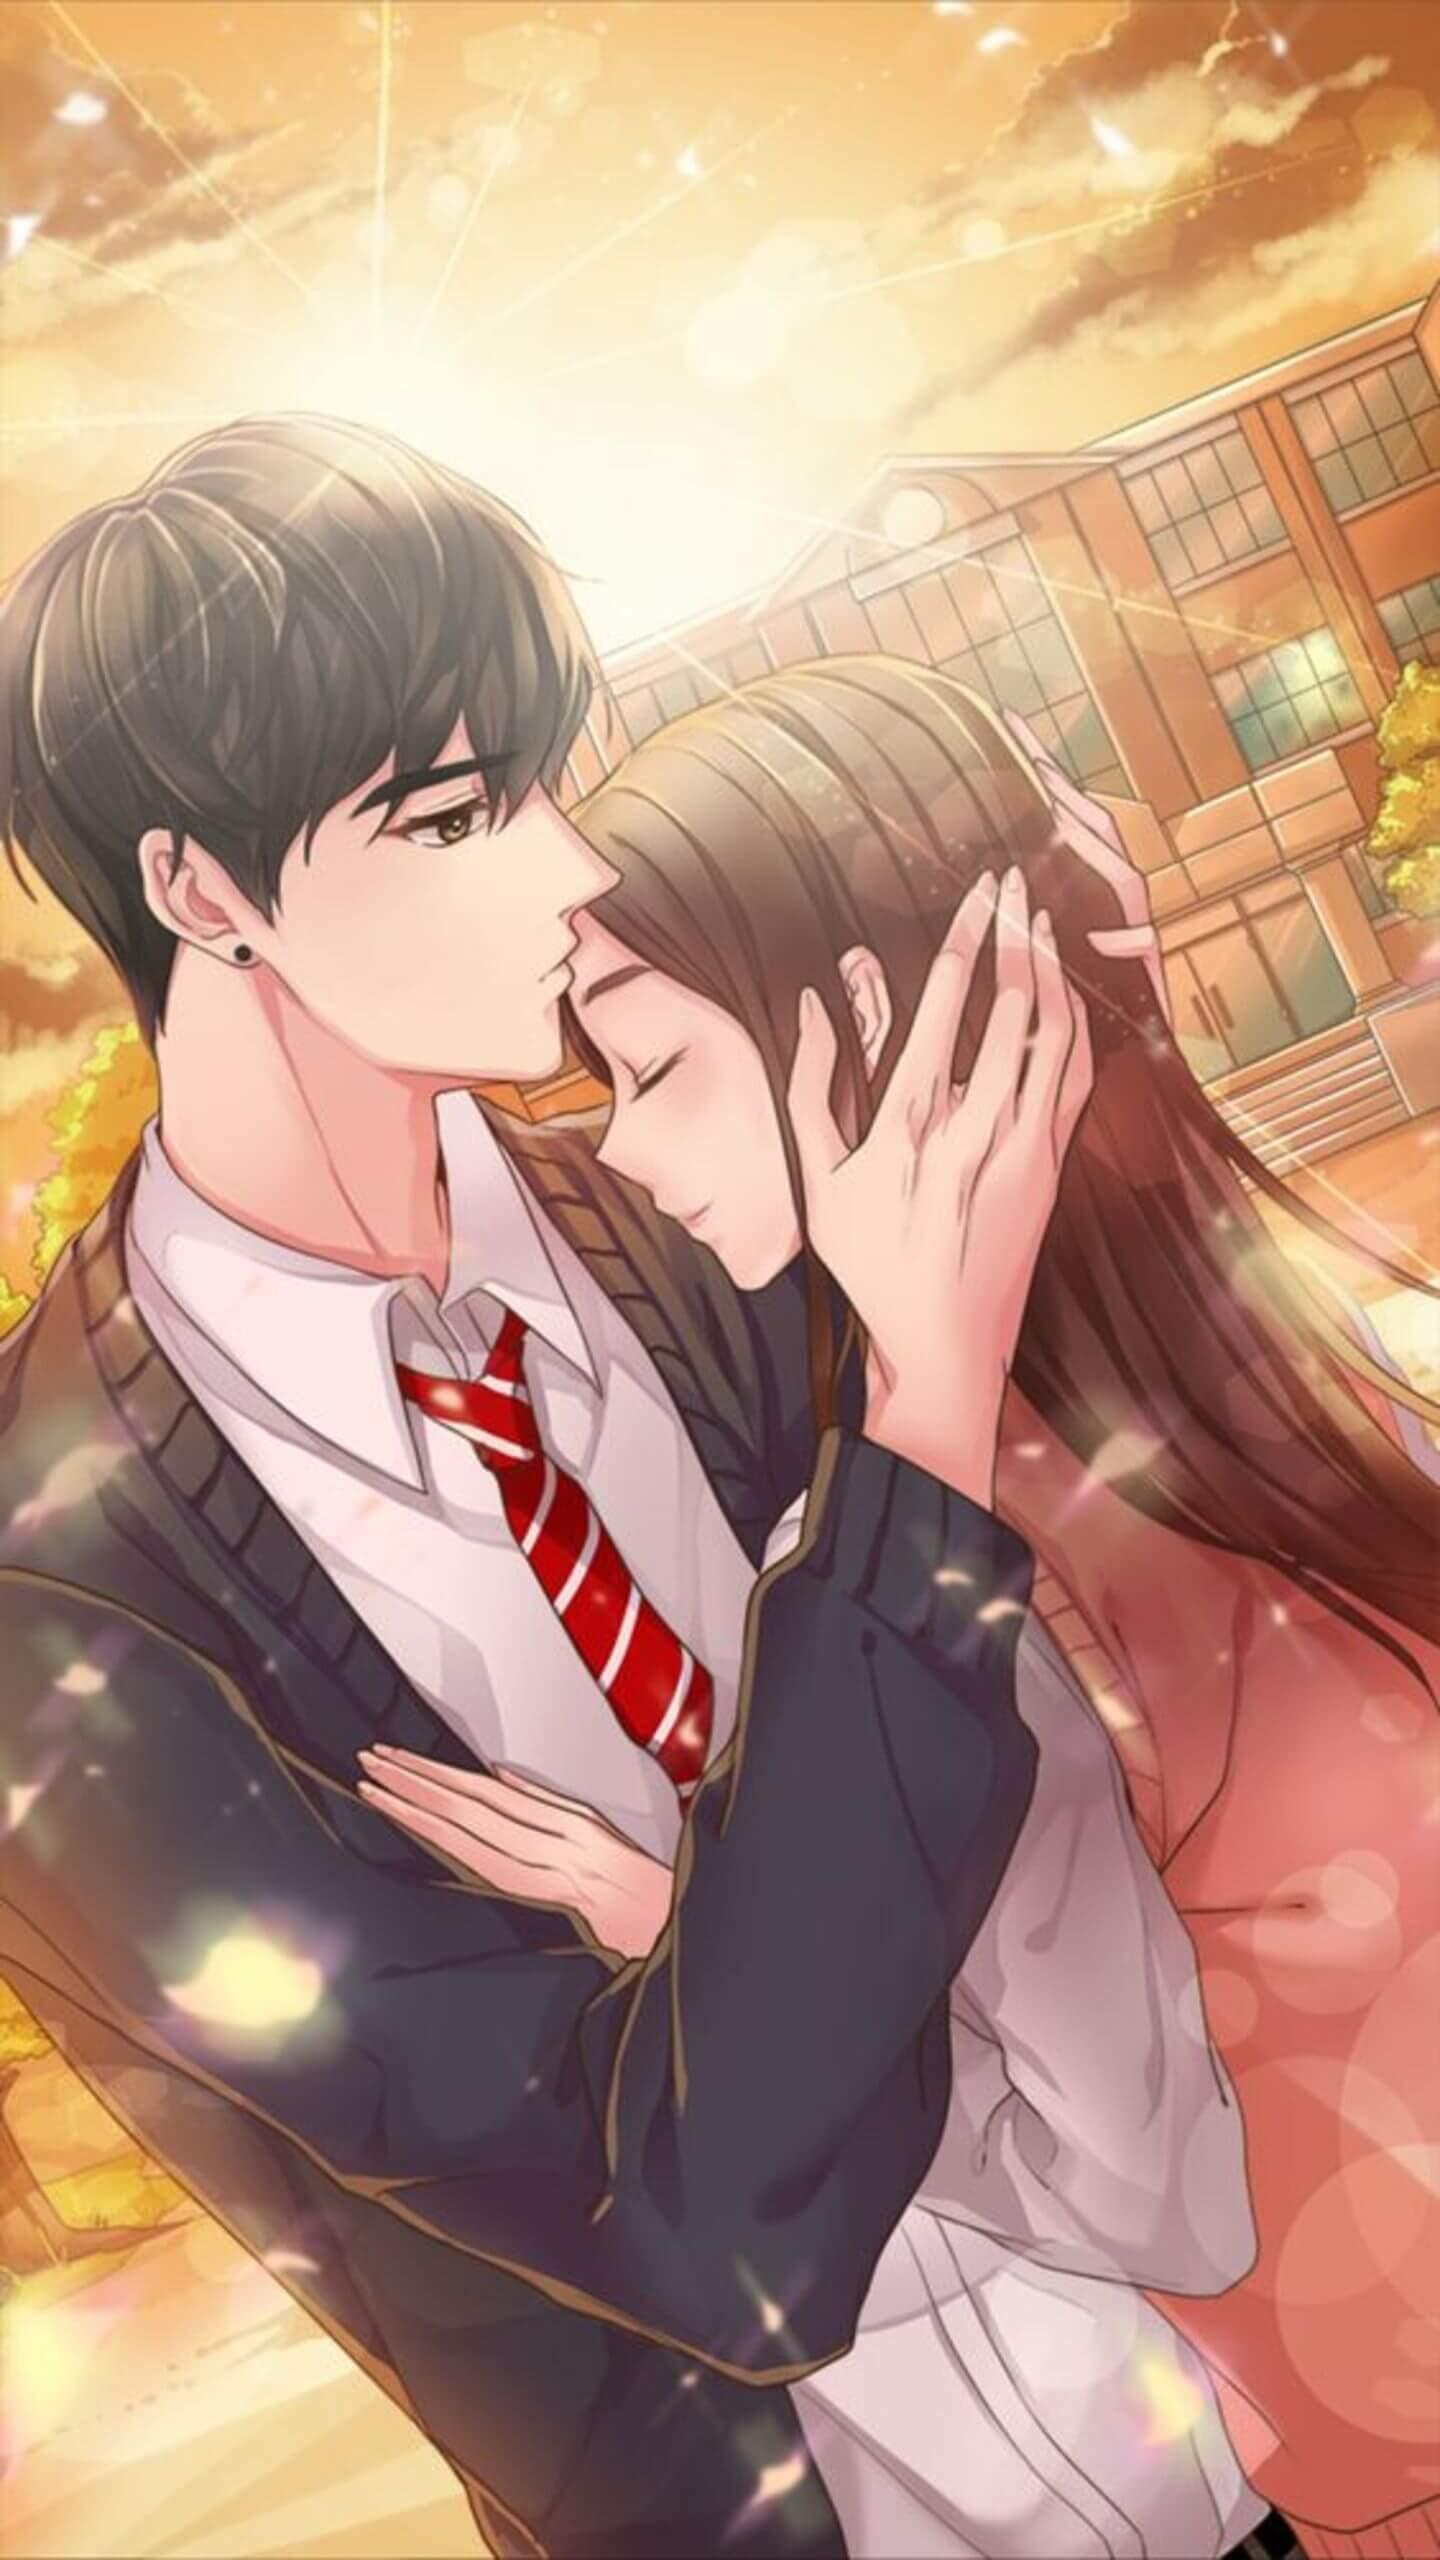 Anime Love Couple Wallpapers For Android Apk Download